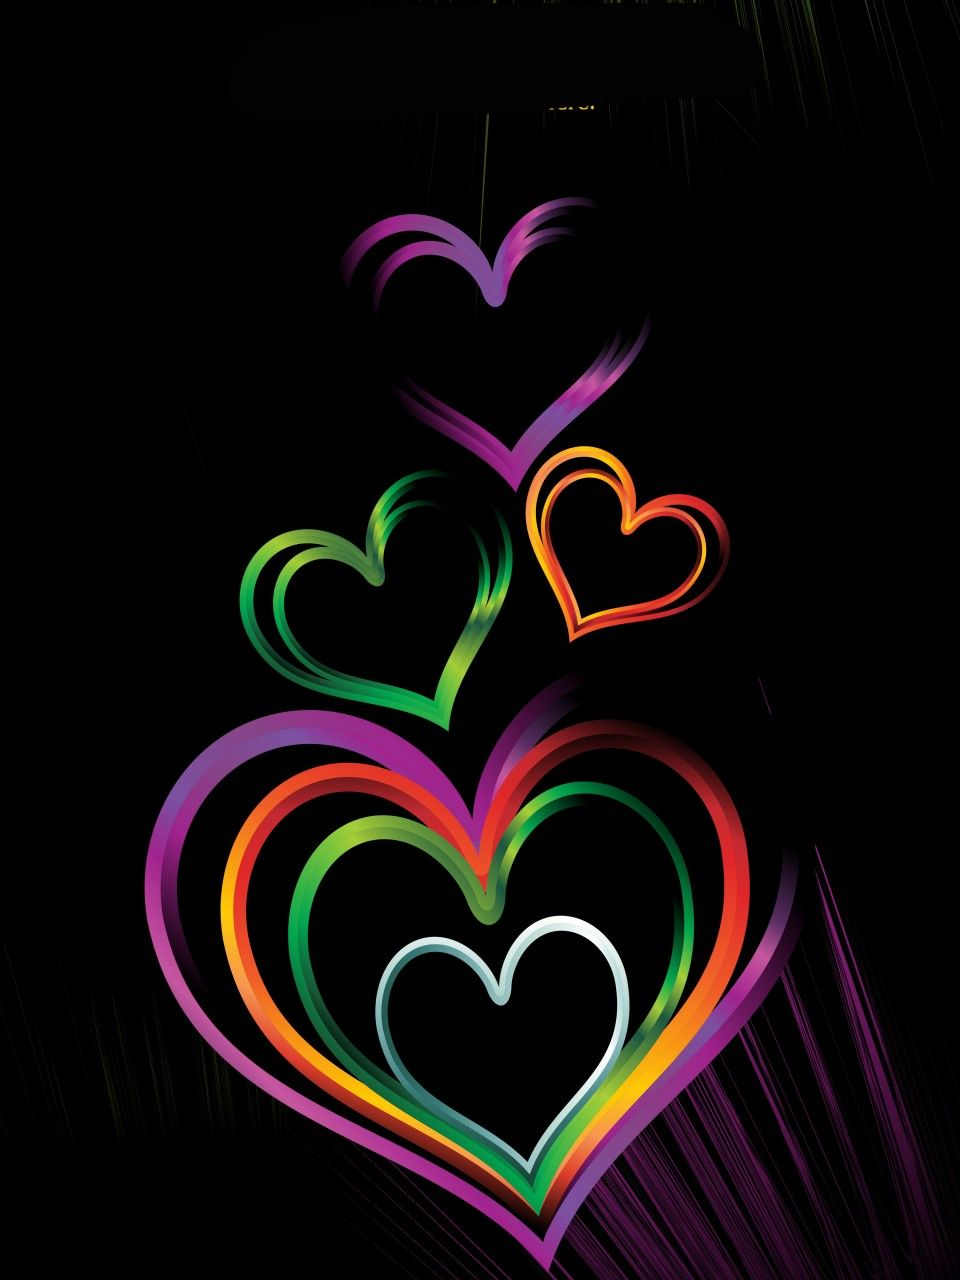 Colorful Heart Backgrounds  Colorful Heart On Black -9706